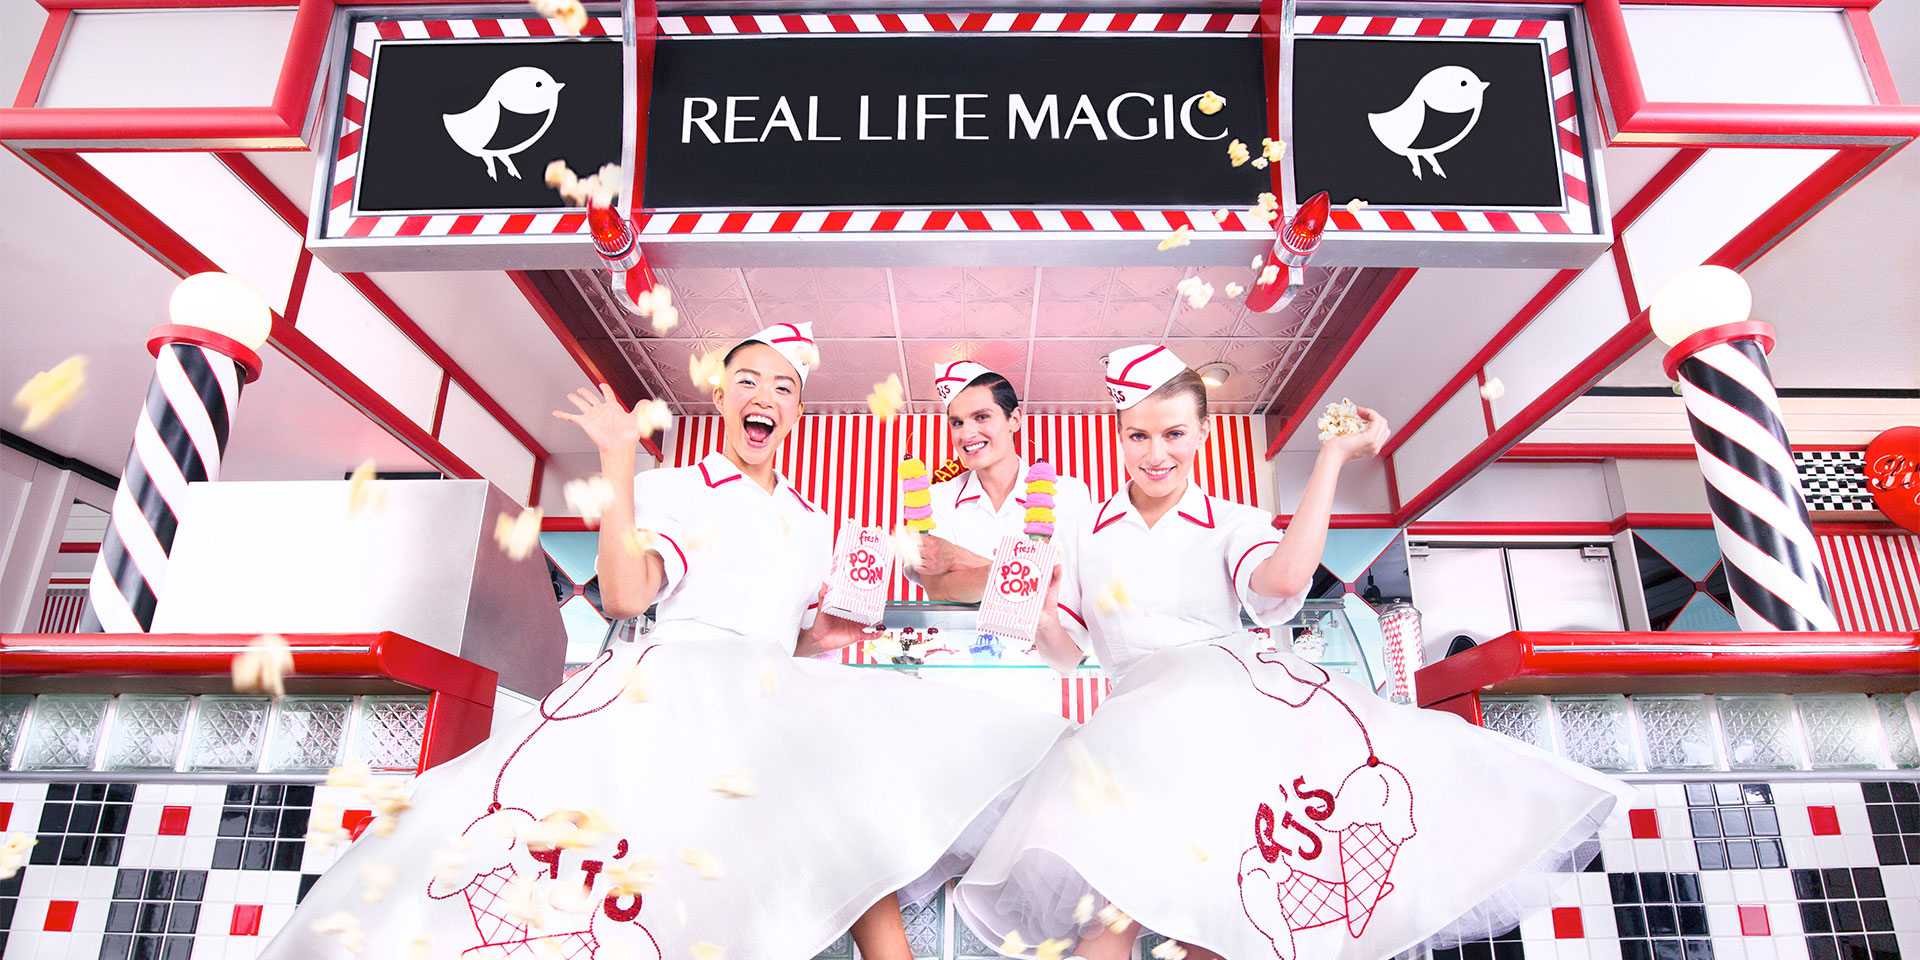 """Real Life Magic"" sign above three girls in big skirts and hats serving ice cream"